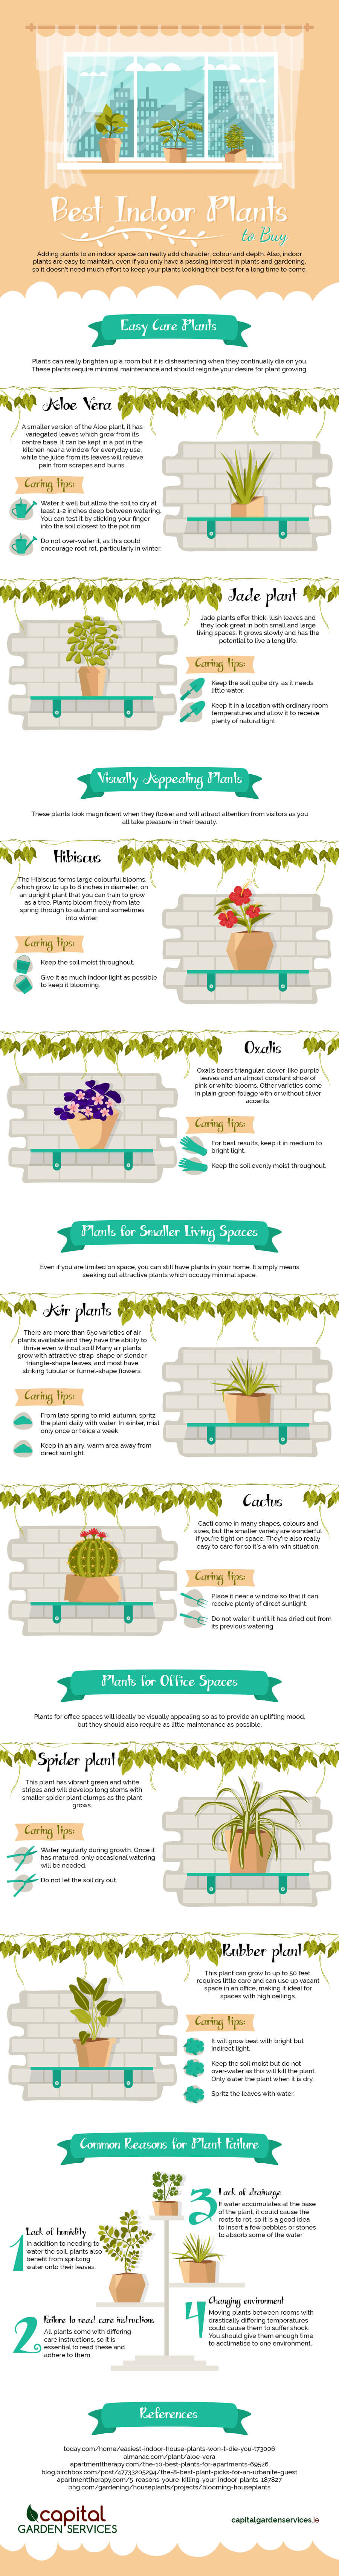 Best-Indoor-Plants-Infographic-plaza